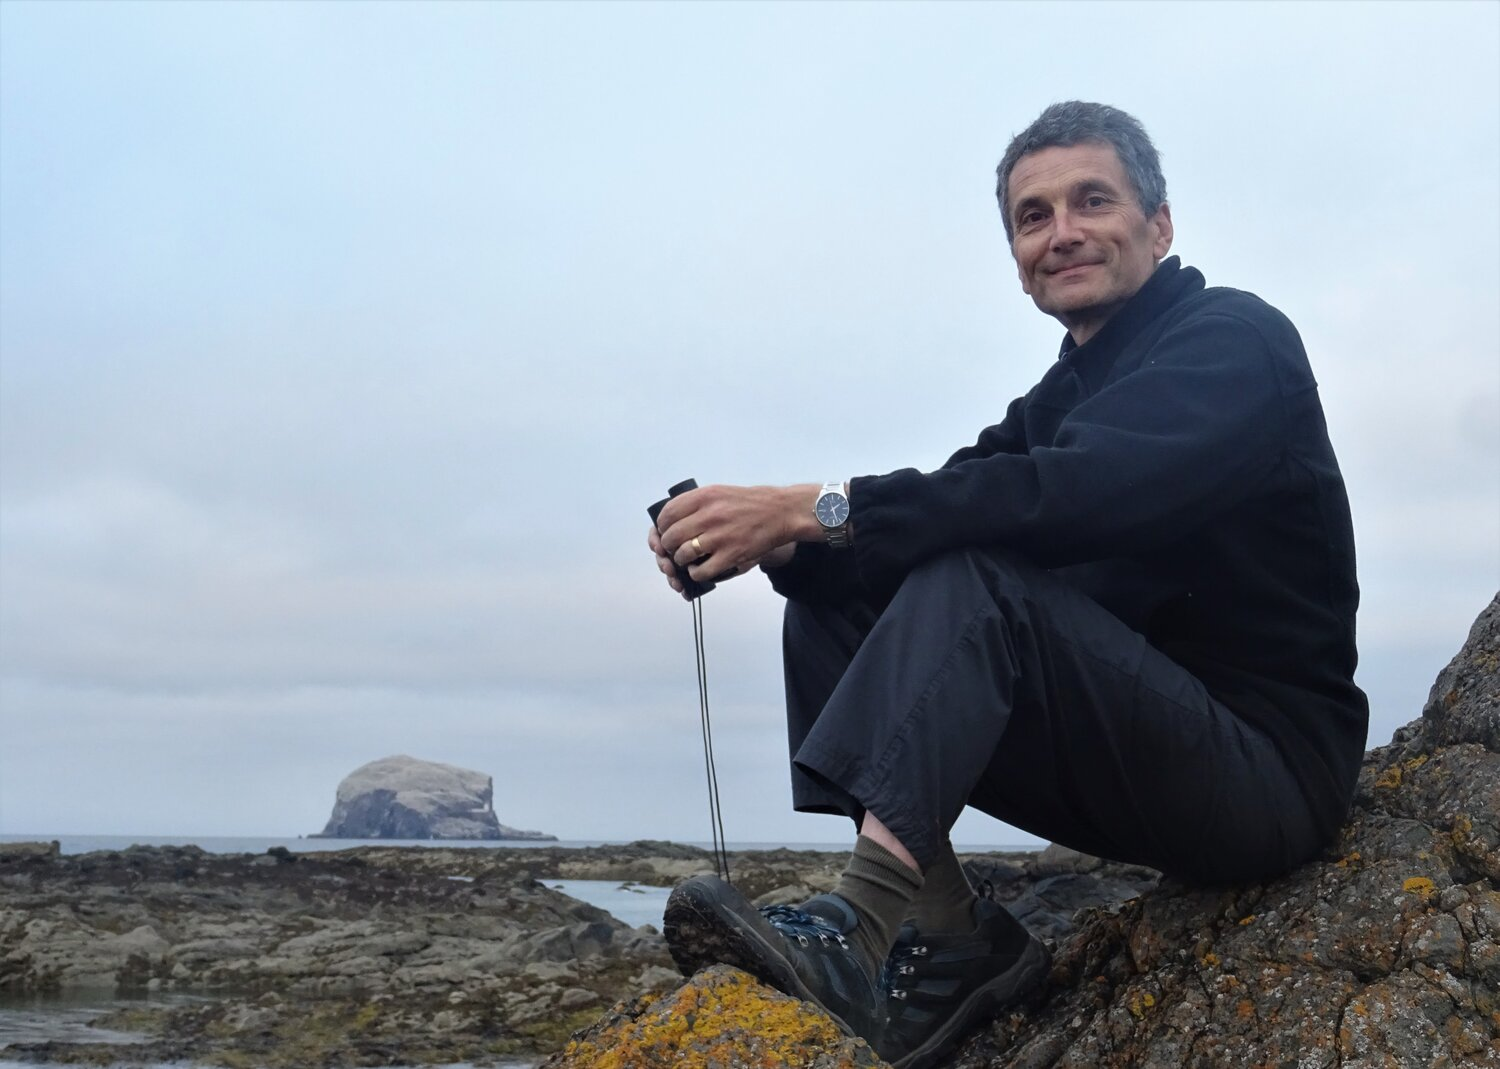 Neil Kitching, expert in regenerative agriculture and rewilding, sitting in front of the Bass Rock